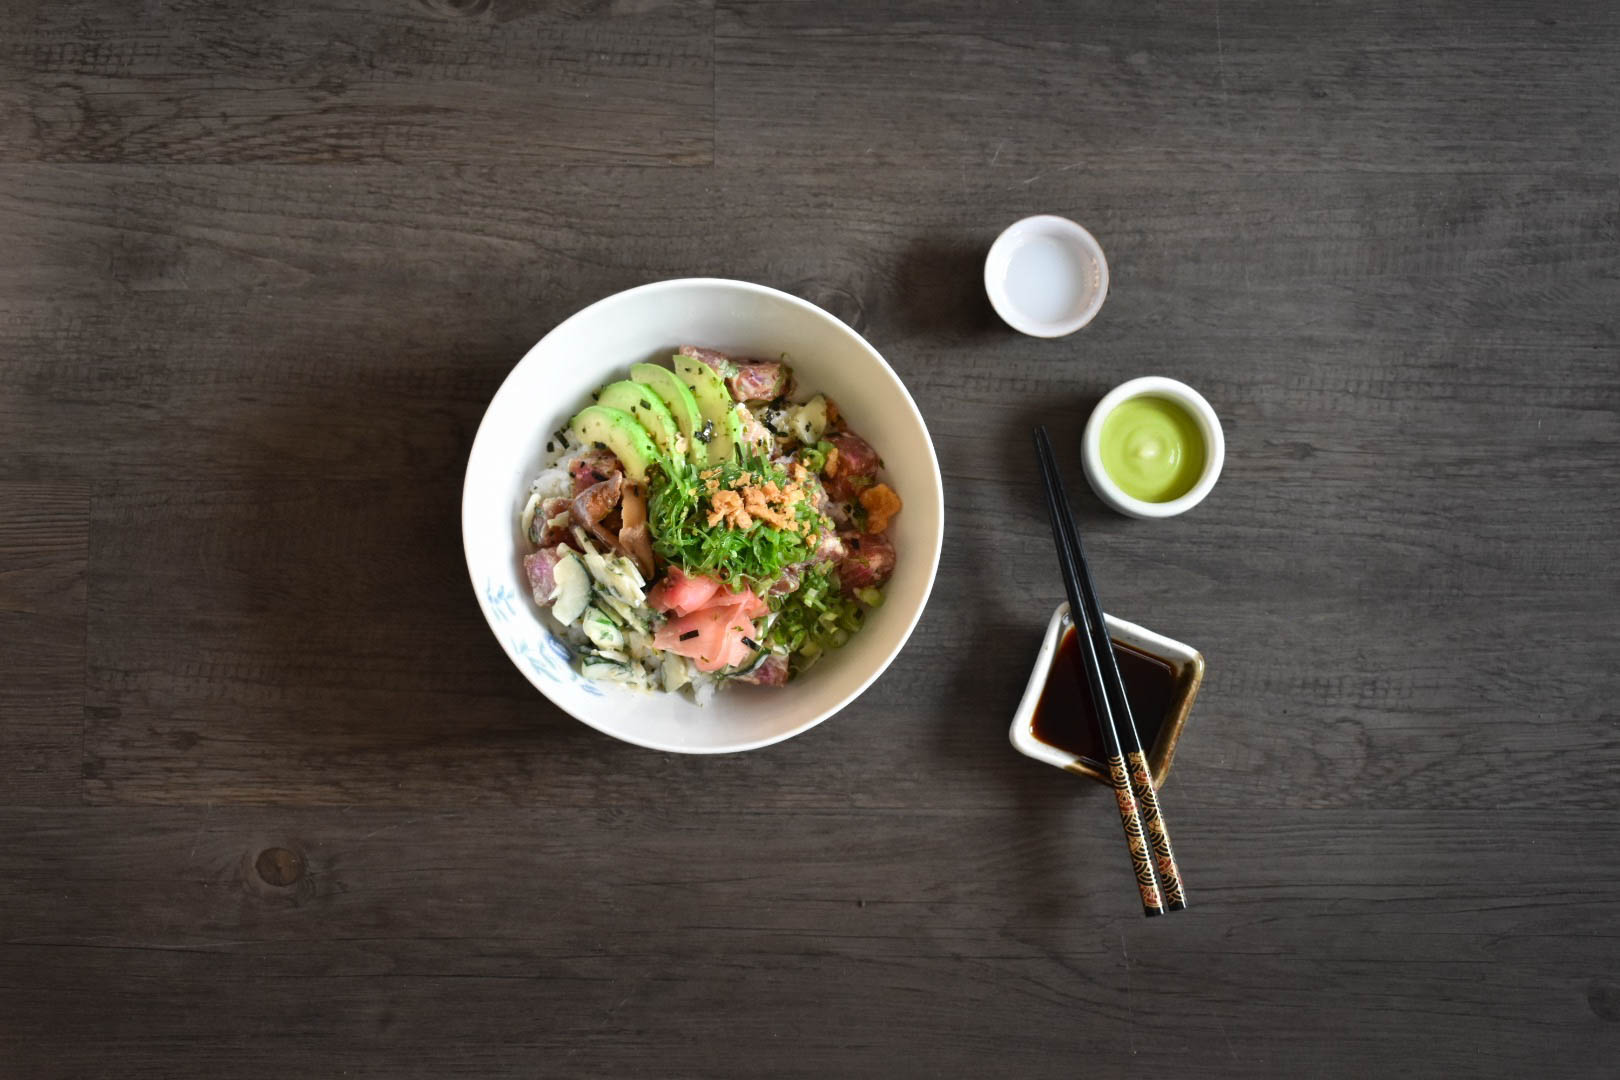 Overhead view of a bowl of poke with chopsticks and dishes of condiments.